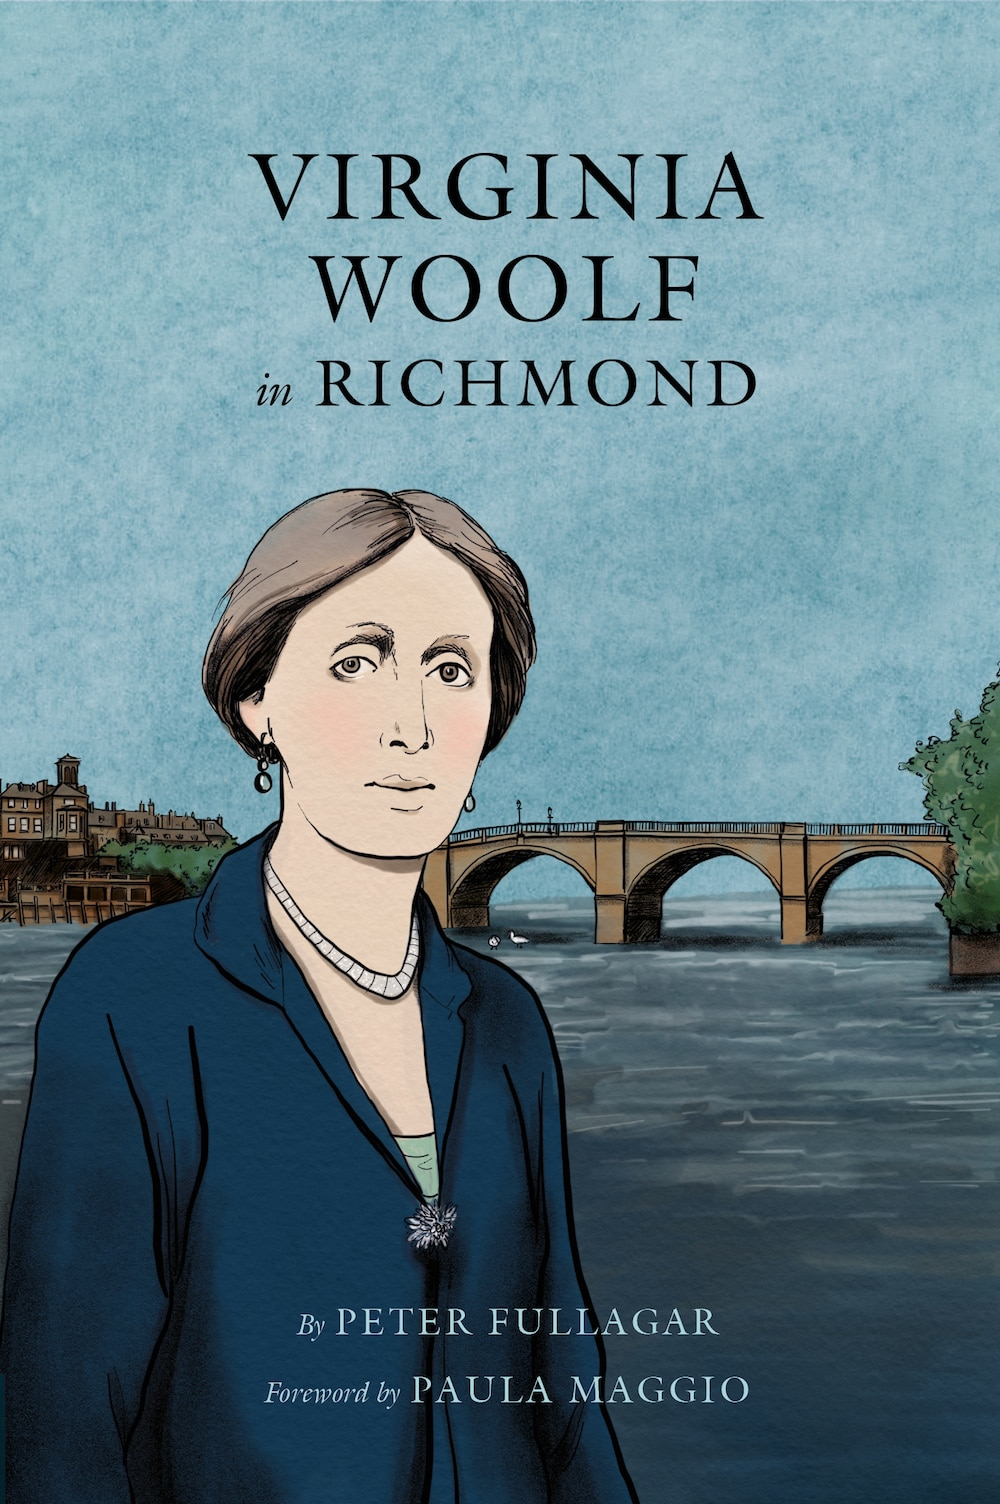 Virginia Woolf in Richmond by Richard Fullagar